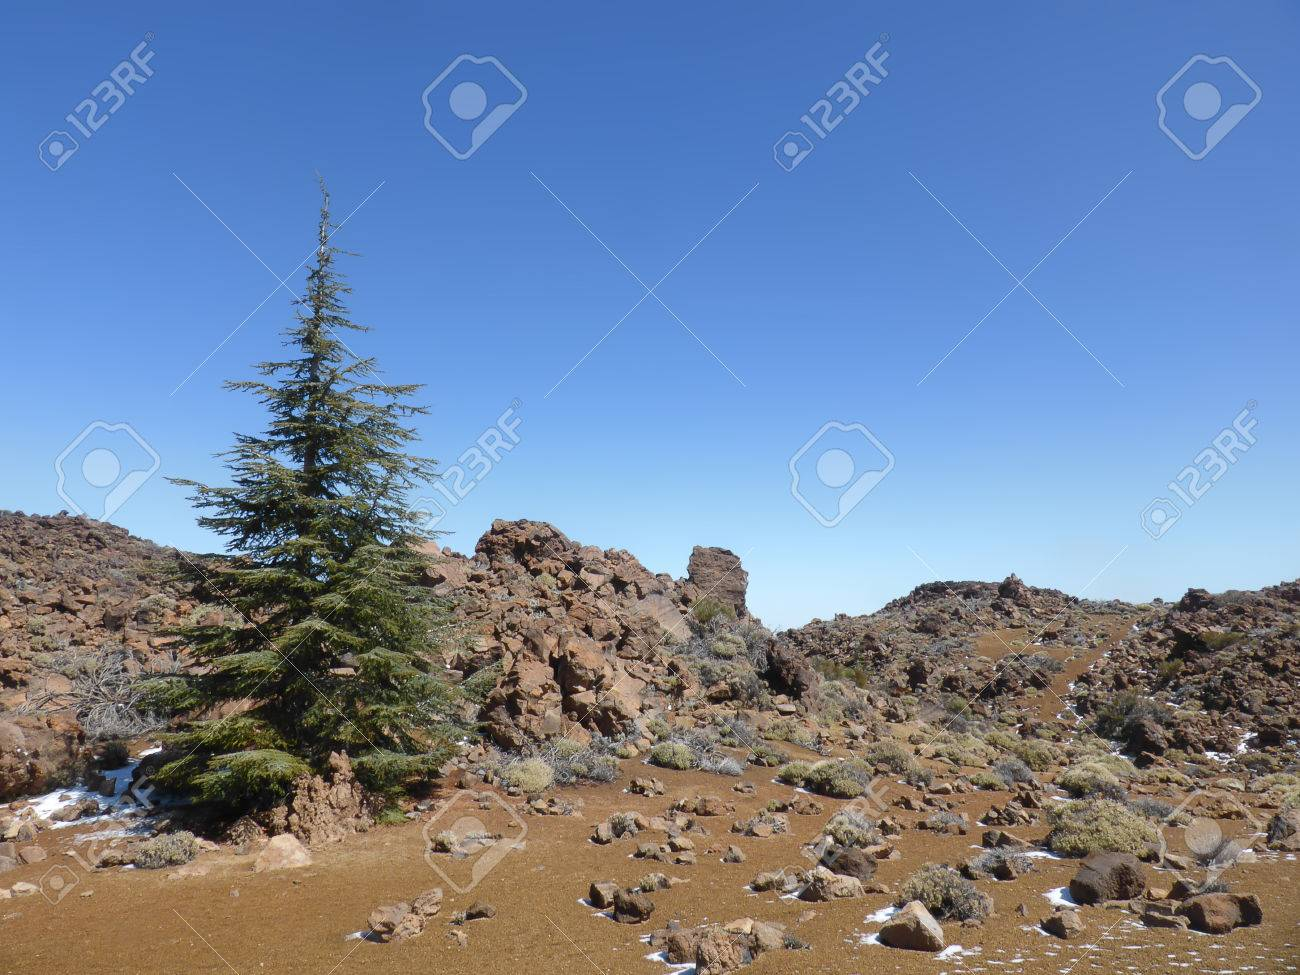 Christmas Tree In The Desert.Christmas Tree In Desert Landscape Mountain Landscape